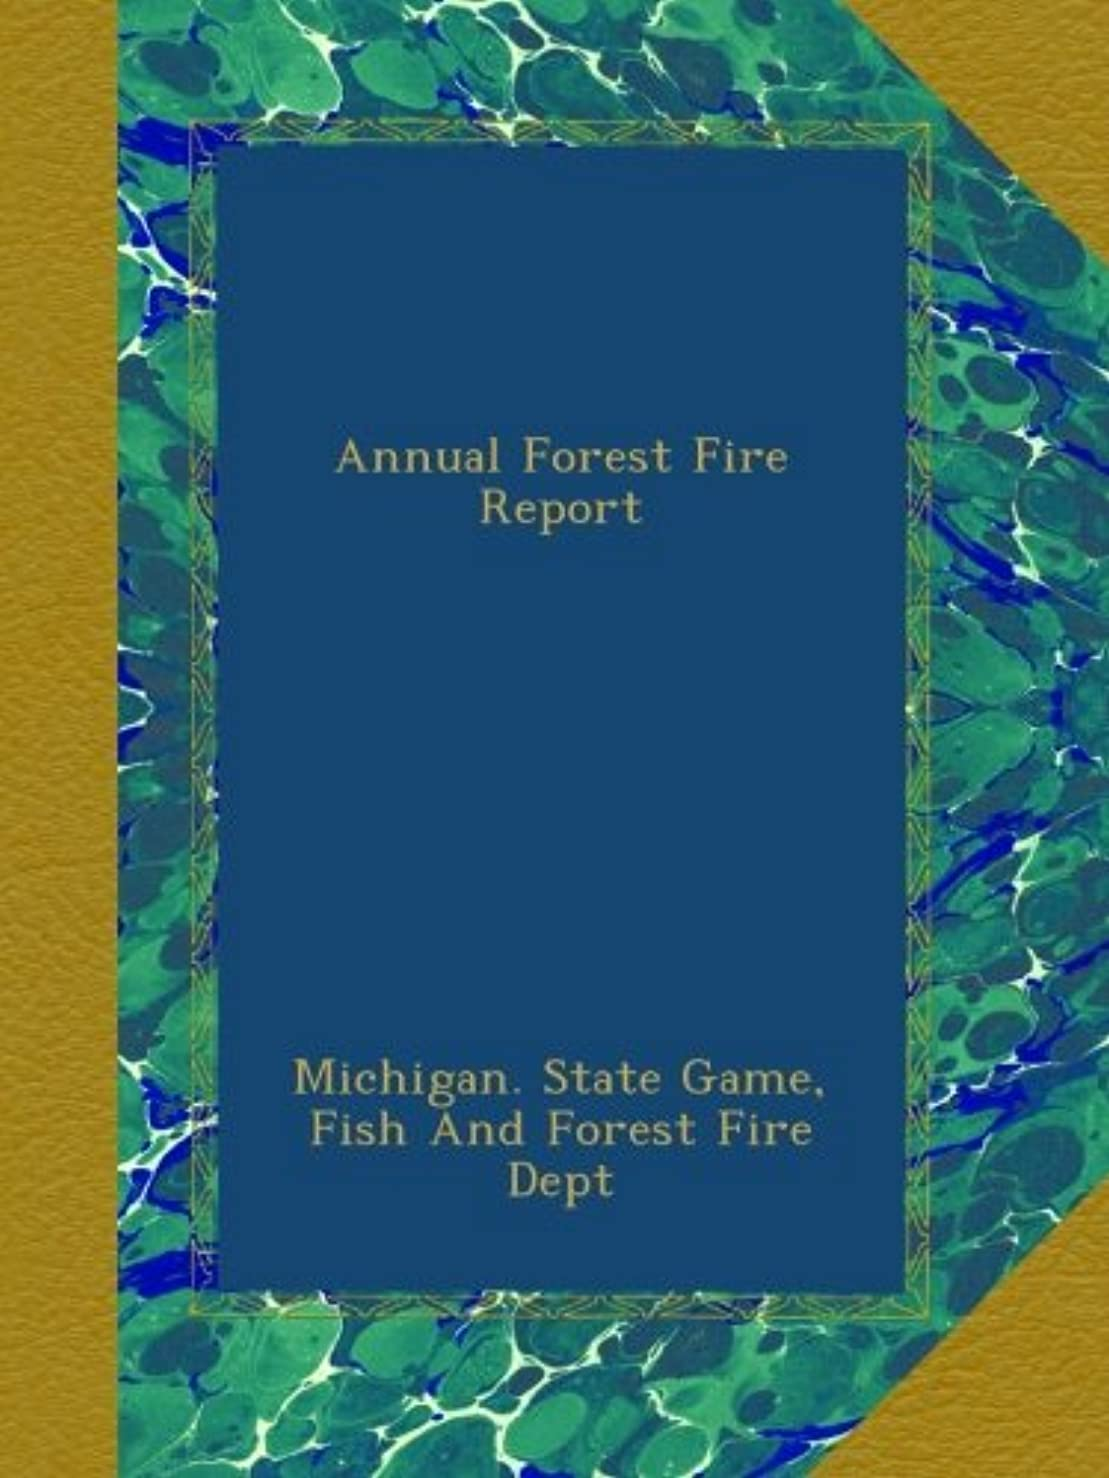 Annual Forest Fire Report